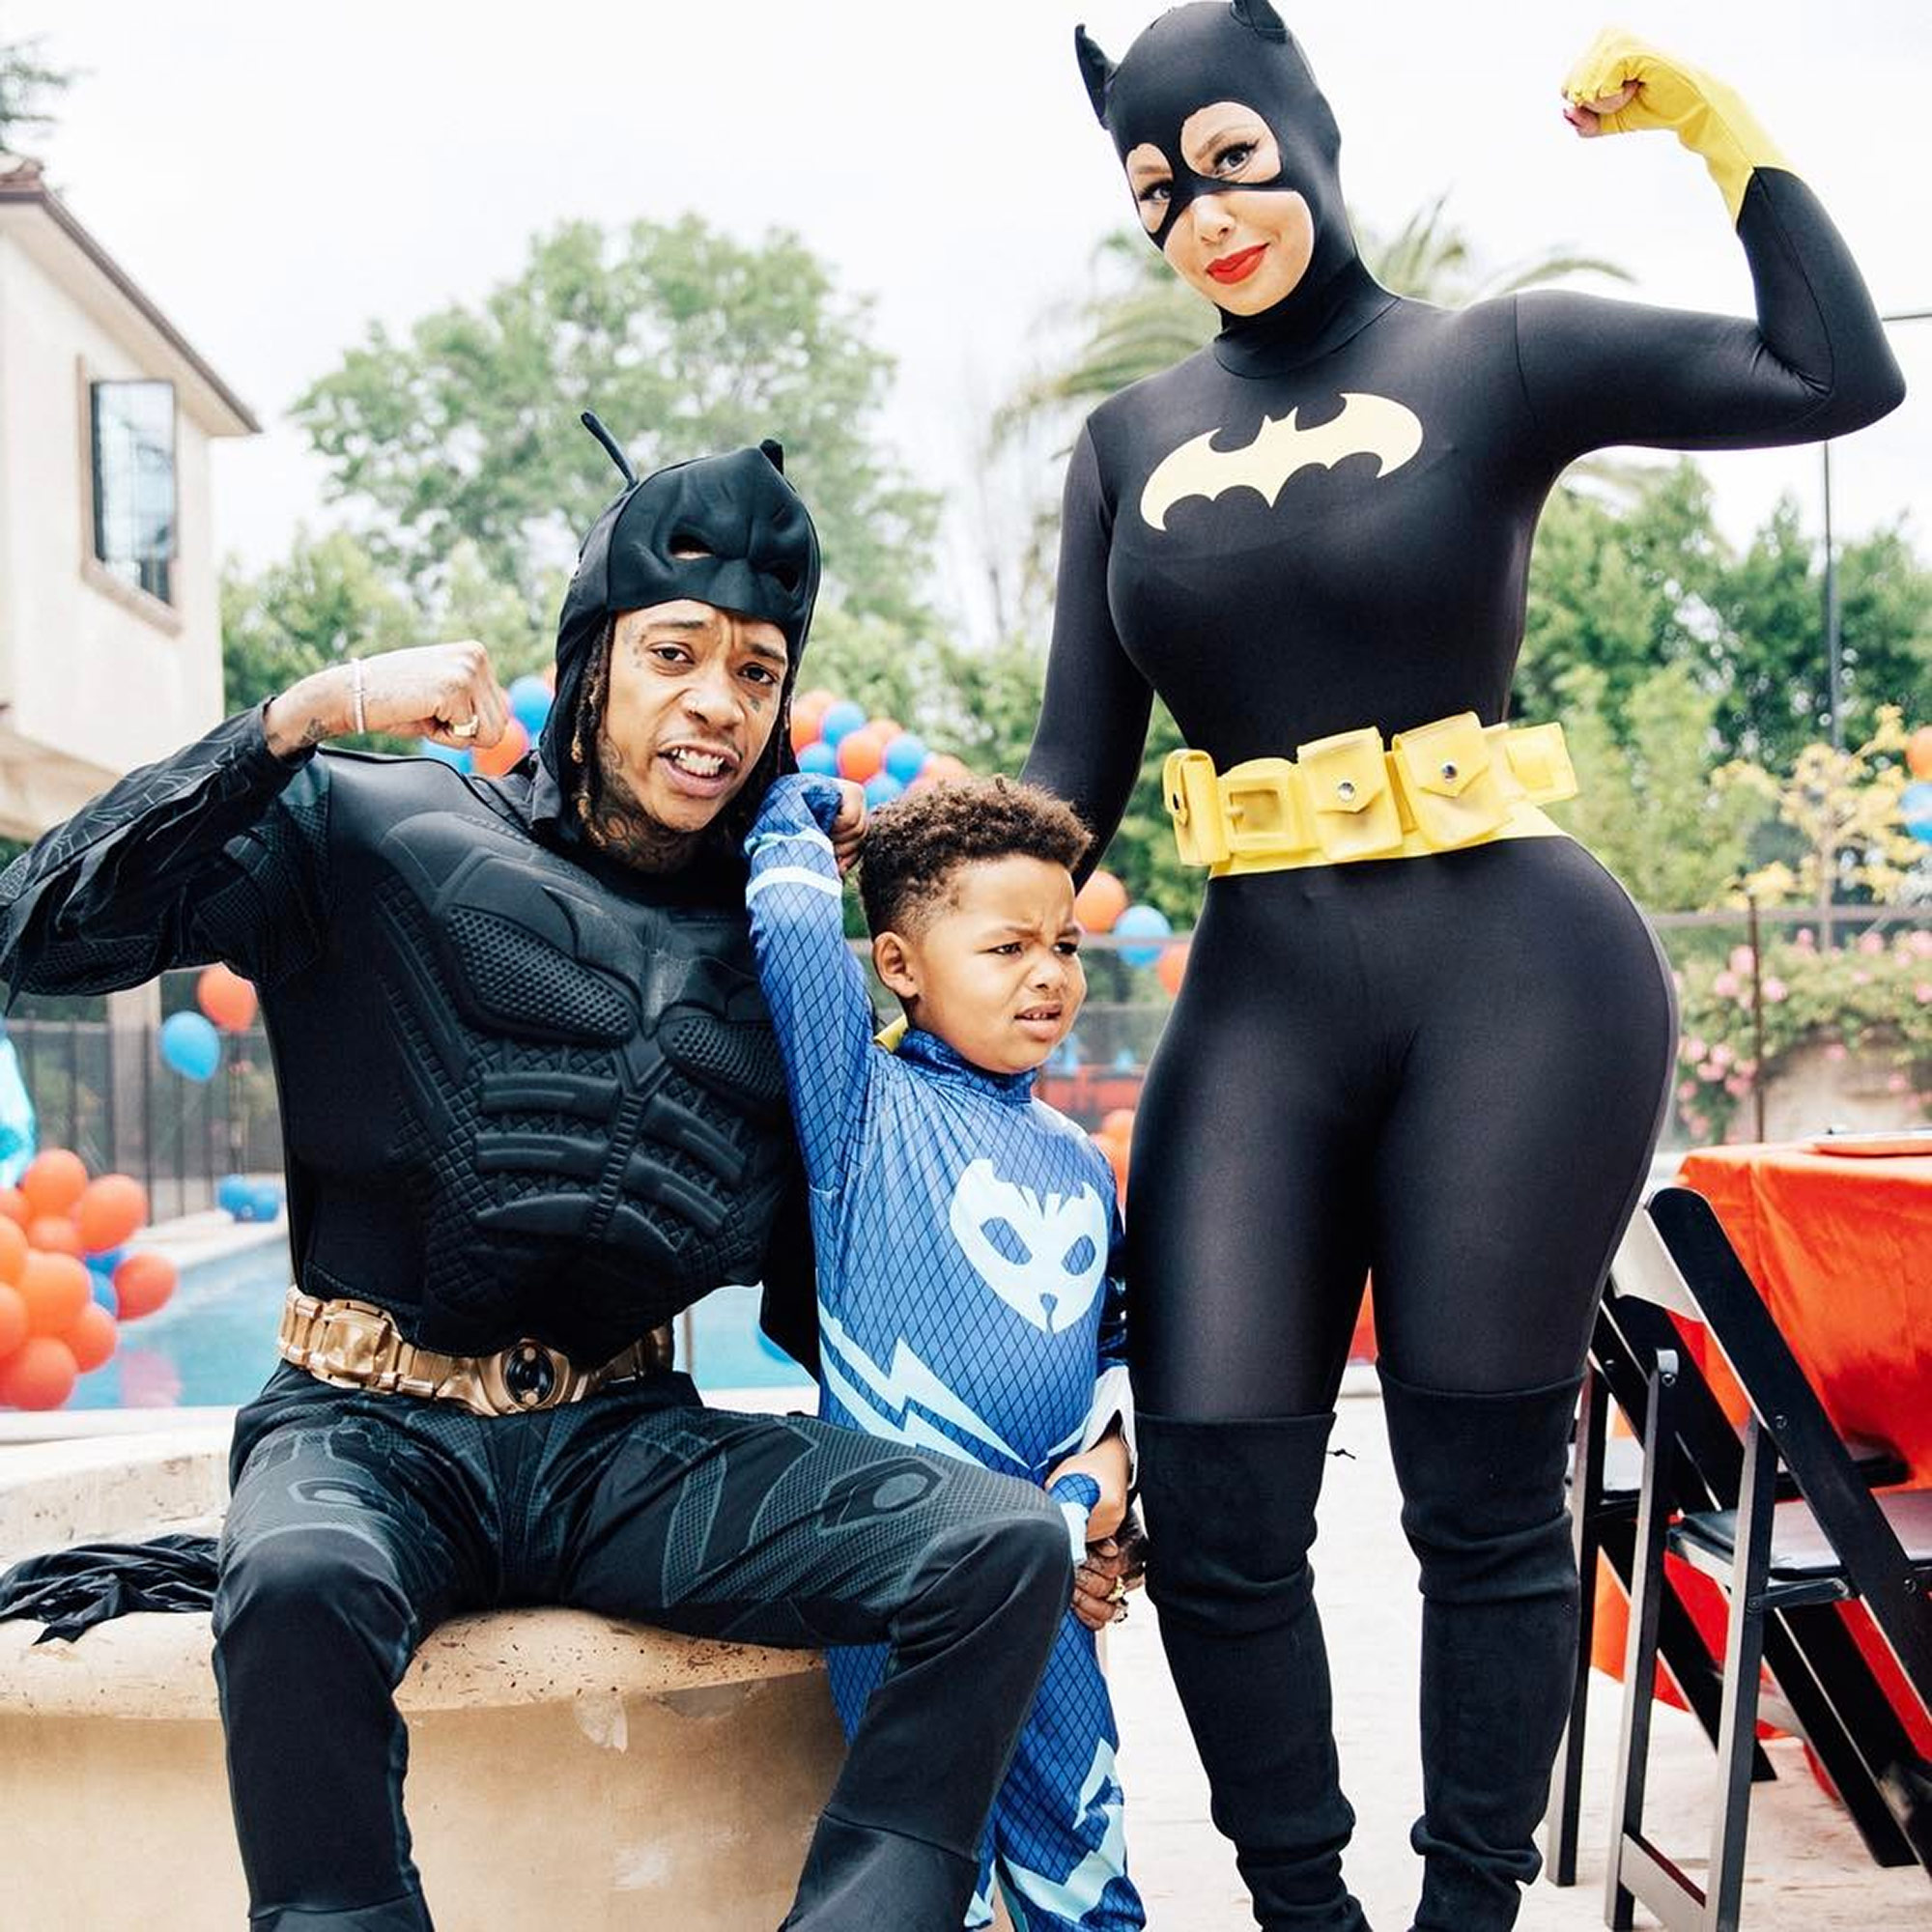 SEBASTIAN TAYLOR'S SUPERHERO-THEMED BIRTHDAY